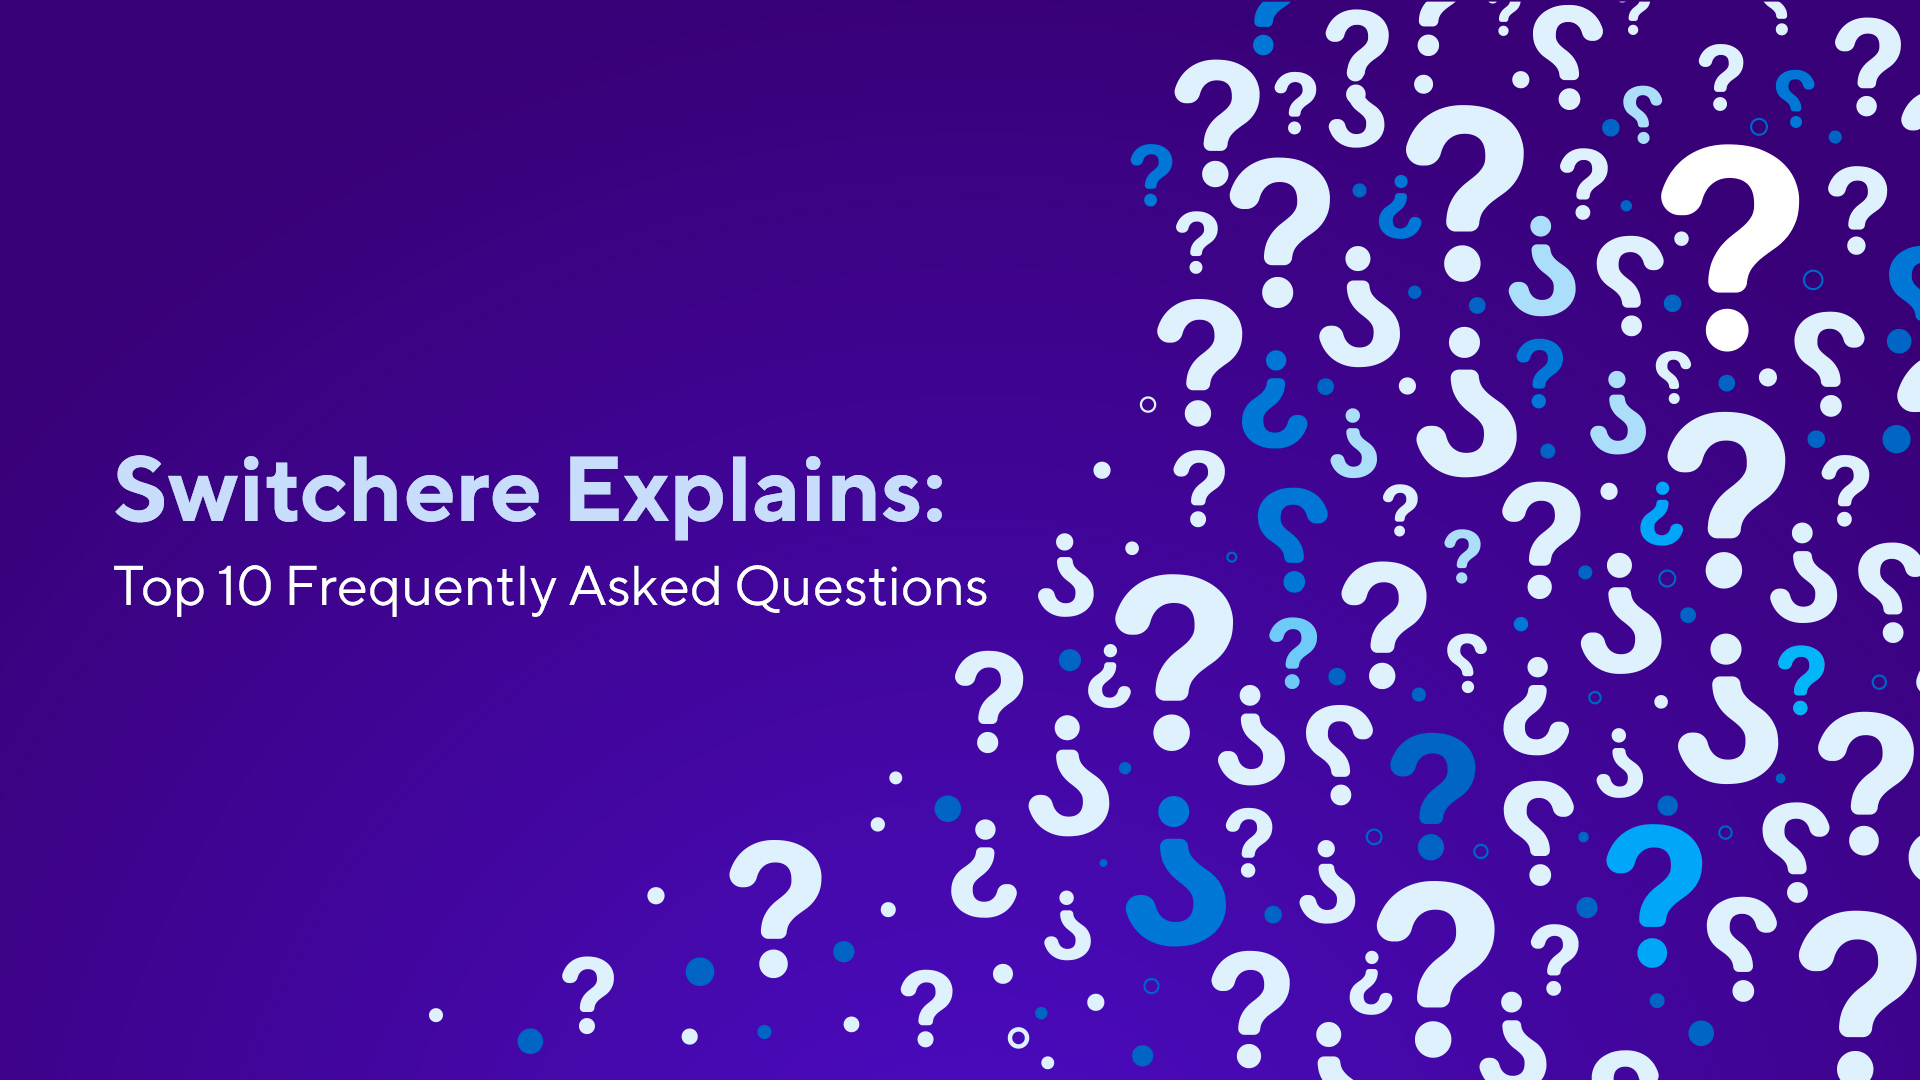 Switchere Explains: Top 10 Frequently Asked Questions